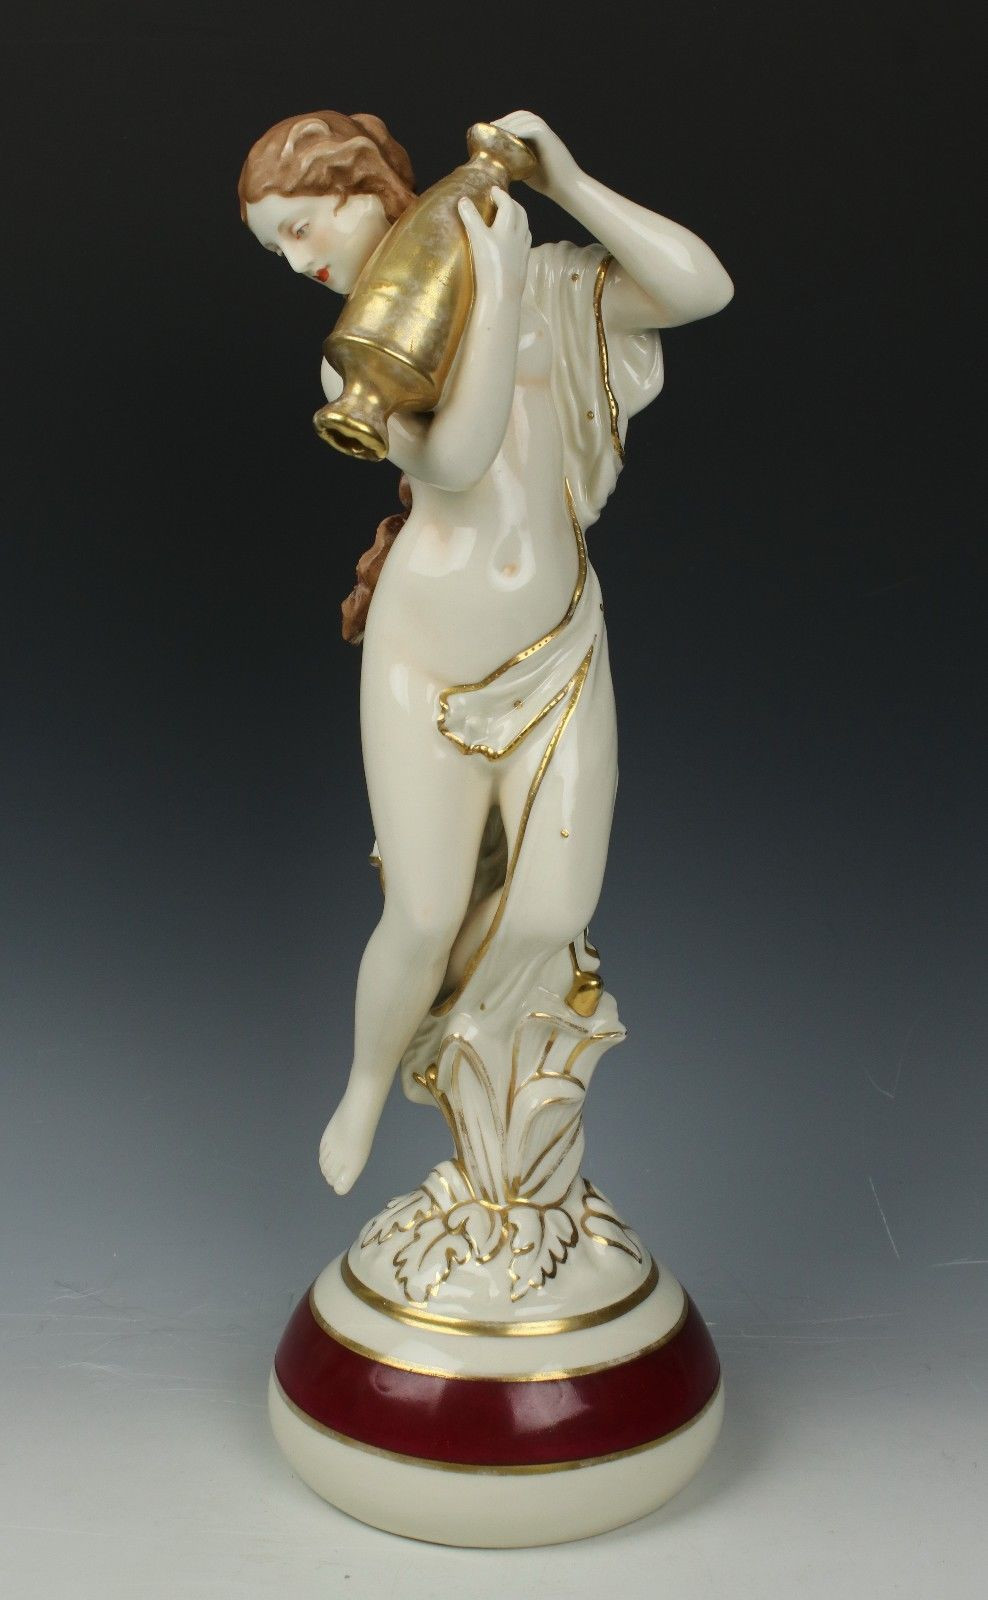 royal dux vase of royal dux art nouveau figurine 2987 woman with urn worldwide within 1 of 12only 1 available